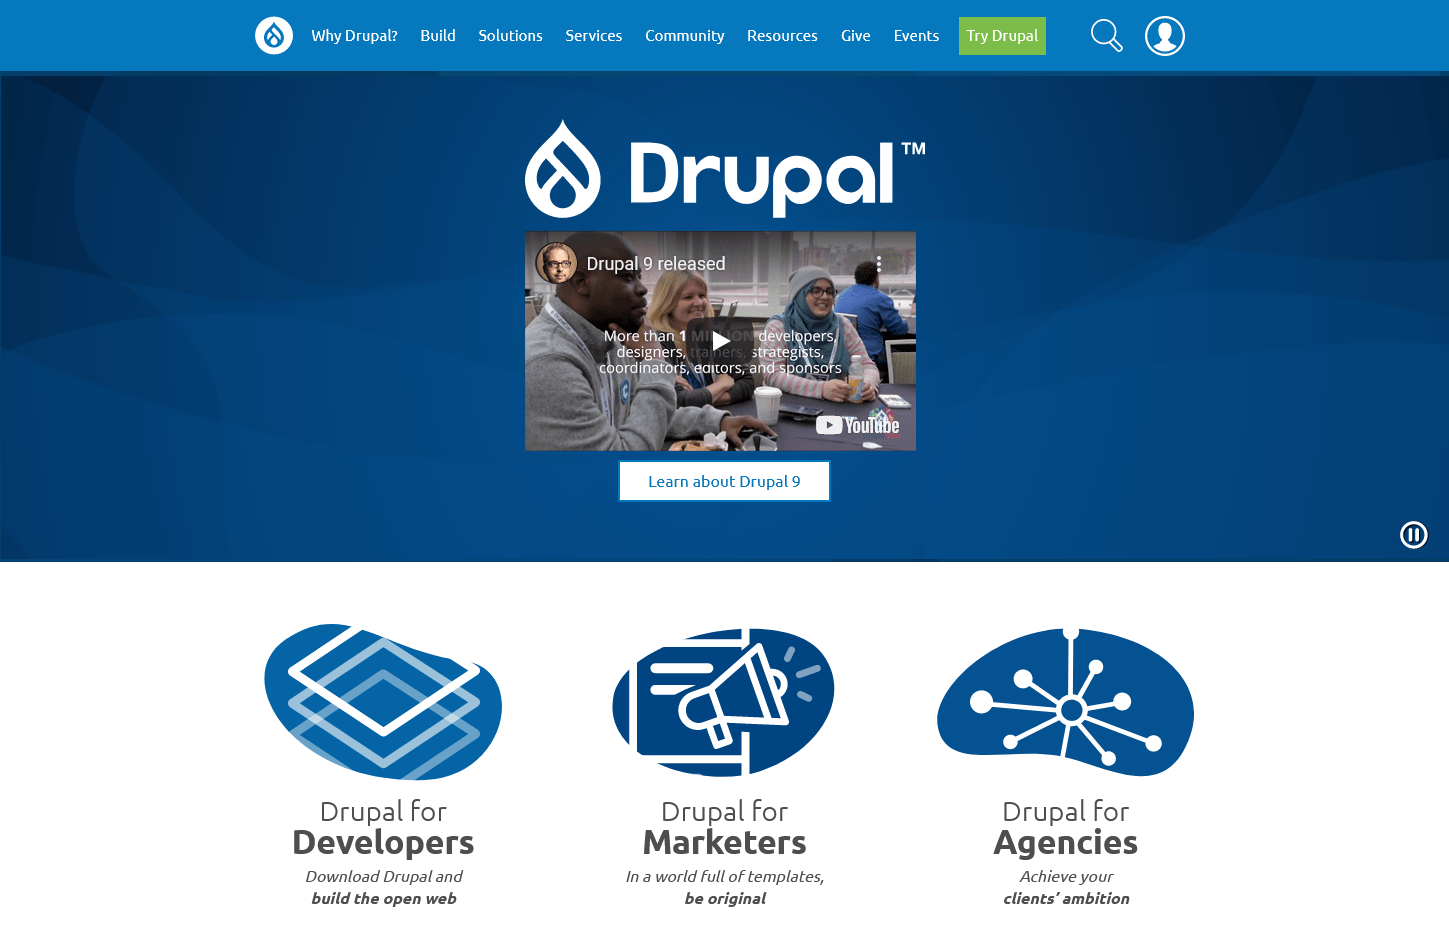 the Drupal home page